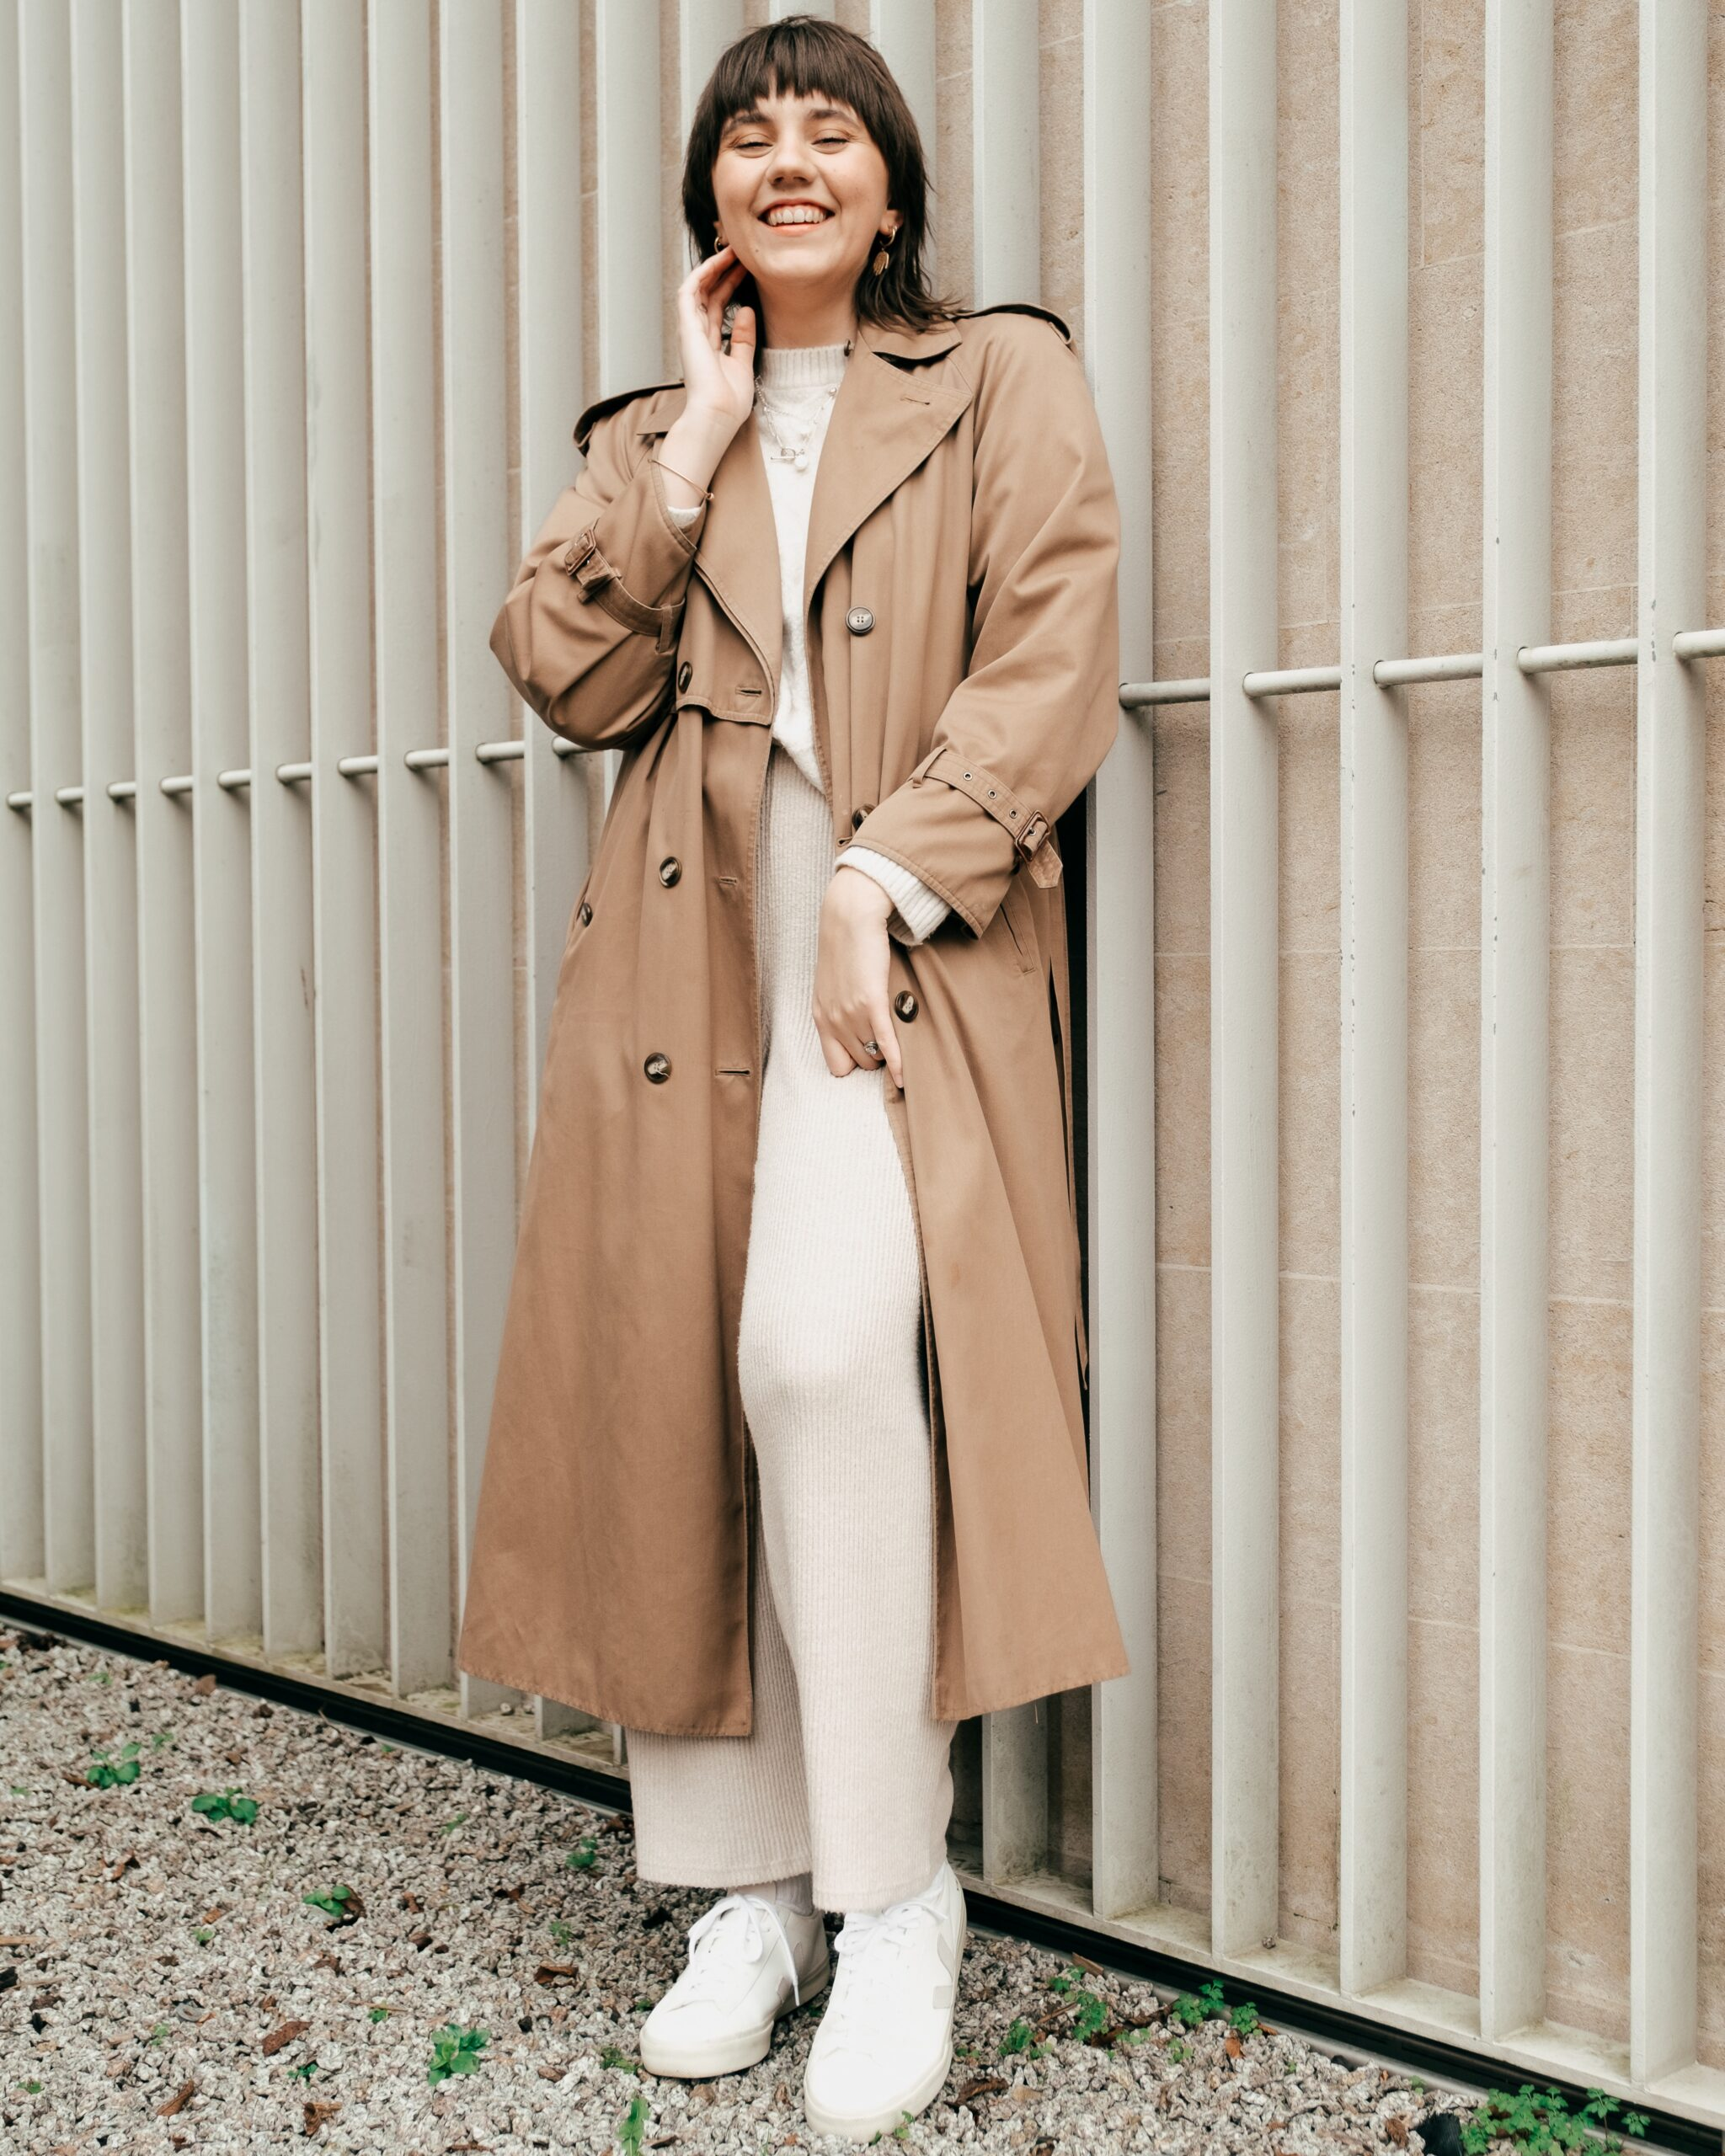 Woman in a trenchcoat